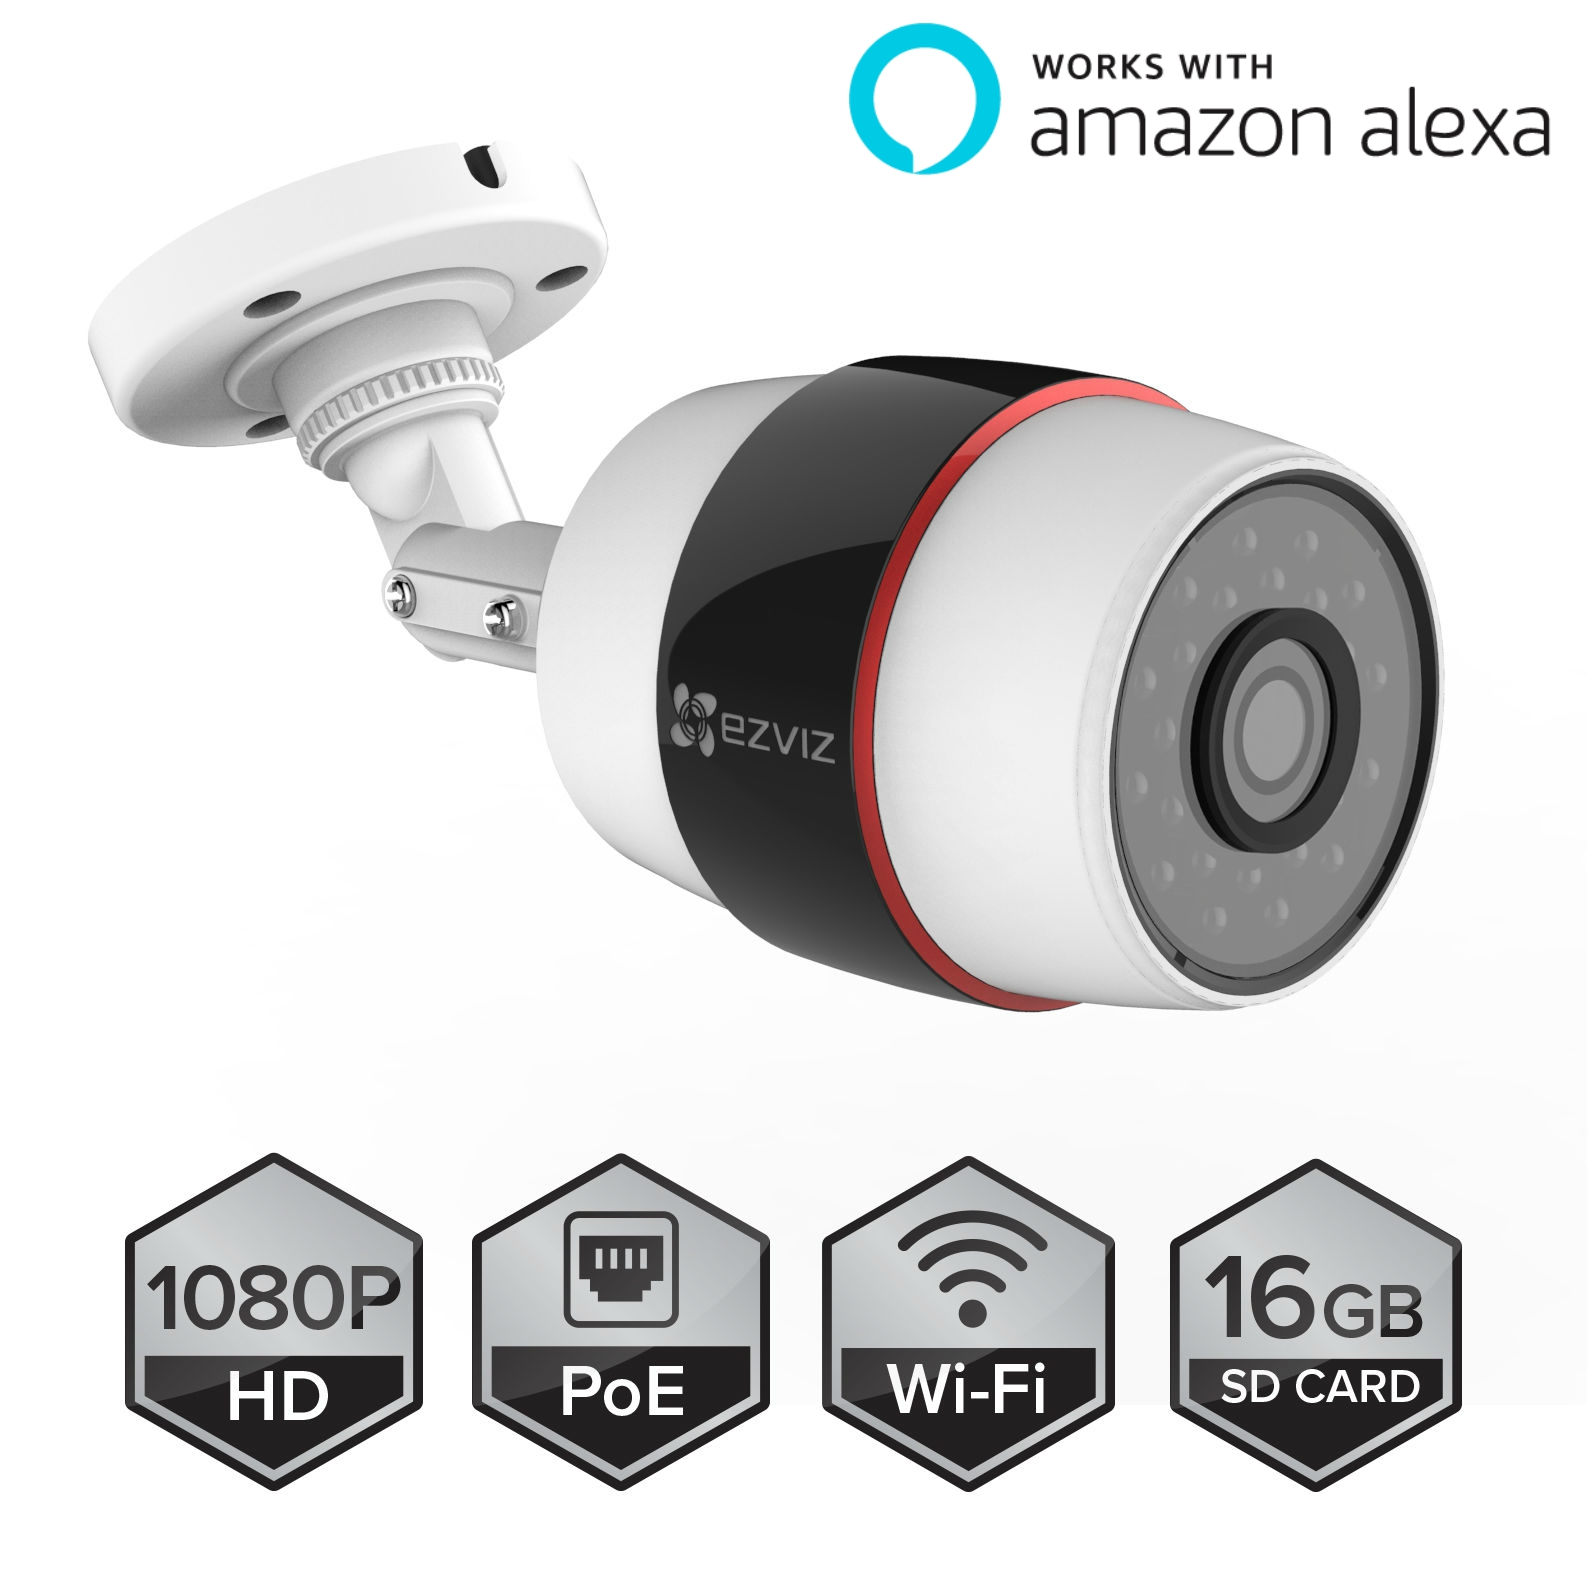 EZVIZ Husky Outdoor HD 1080p PoE & Smart Wi-Fi Video Security Bullet Camera, Works with Alexa, 100 ft. Night Vision, Weatherproof, 16GB Micro SD Included